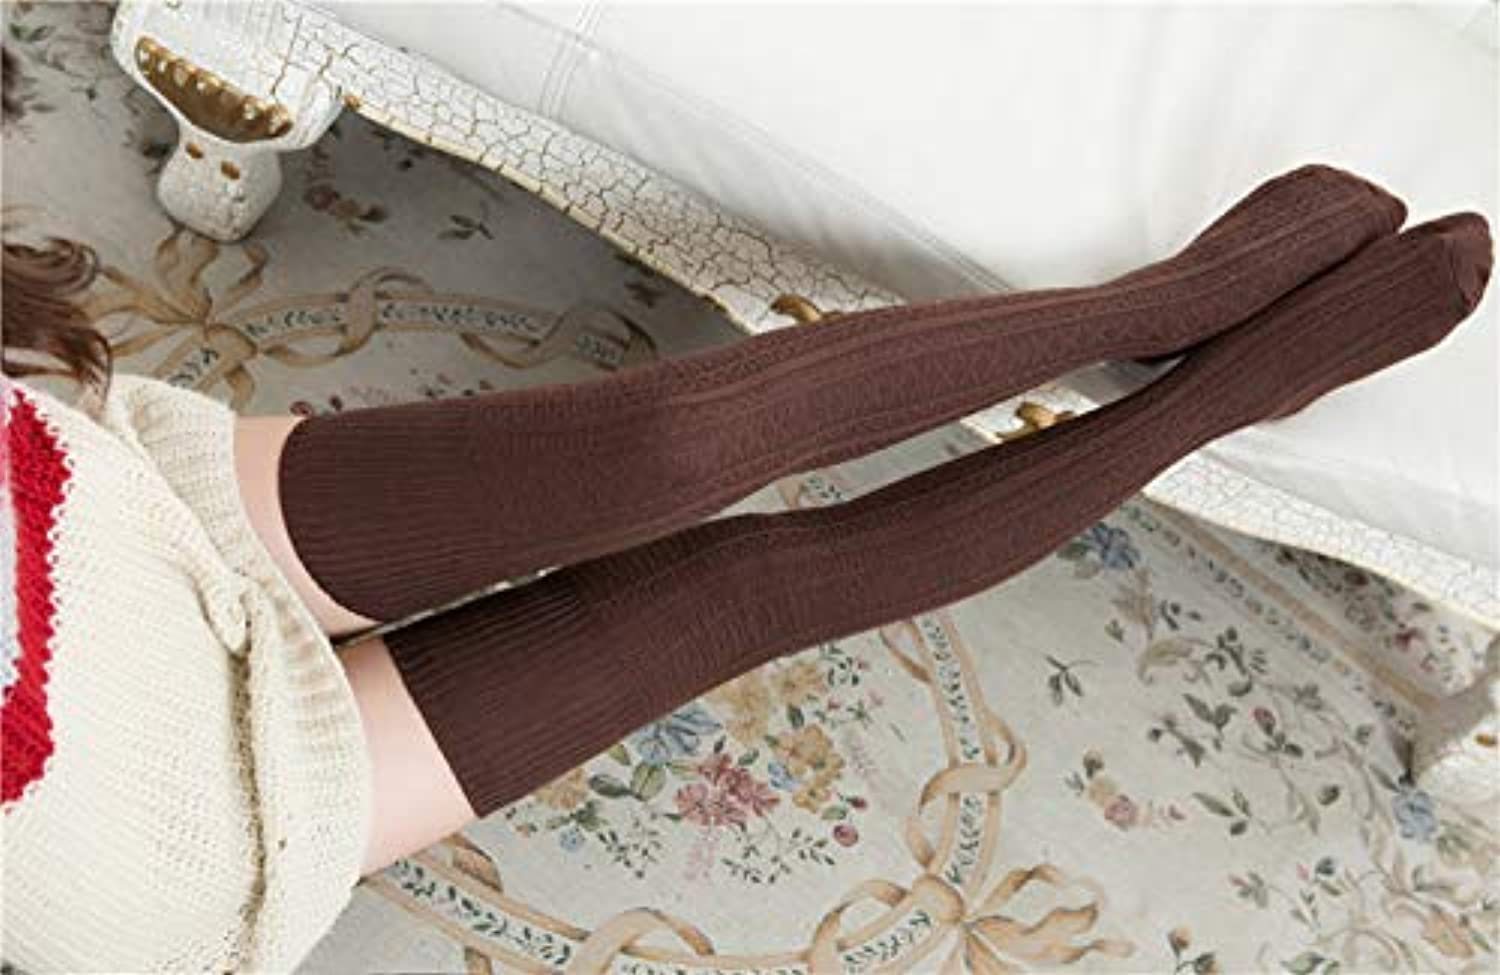 Leg Warmers Spring and Autumn Long Twist Stockings Retro Student Thigh Thick Needle Cotton Over The Knee (color   Coffee) Ankle Warmers for Women